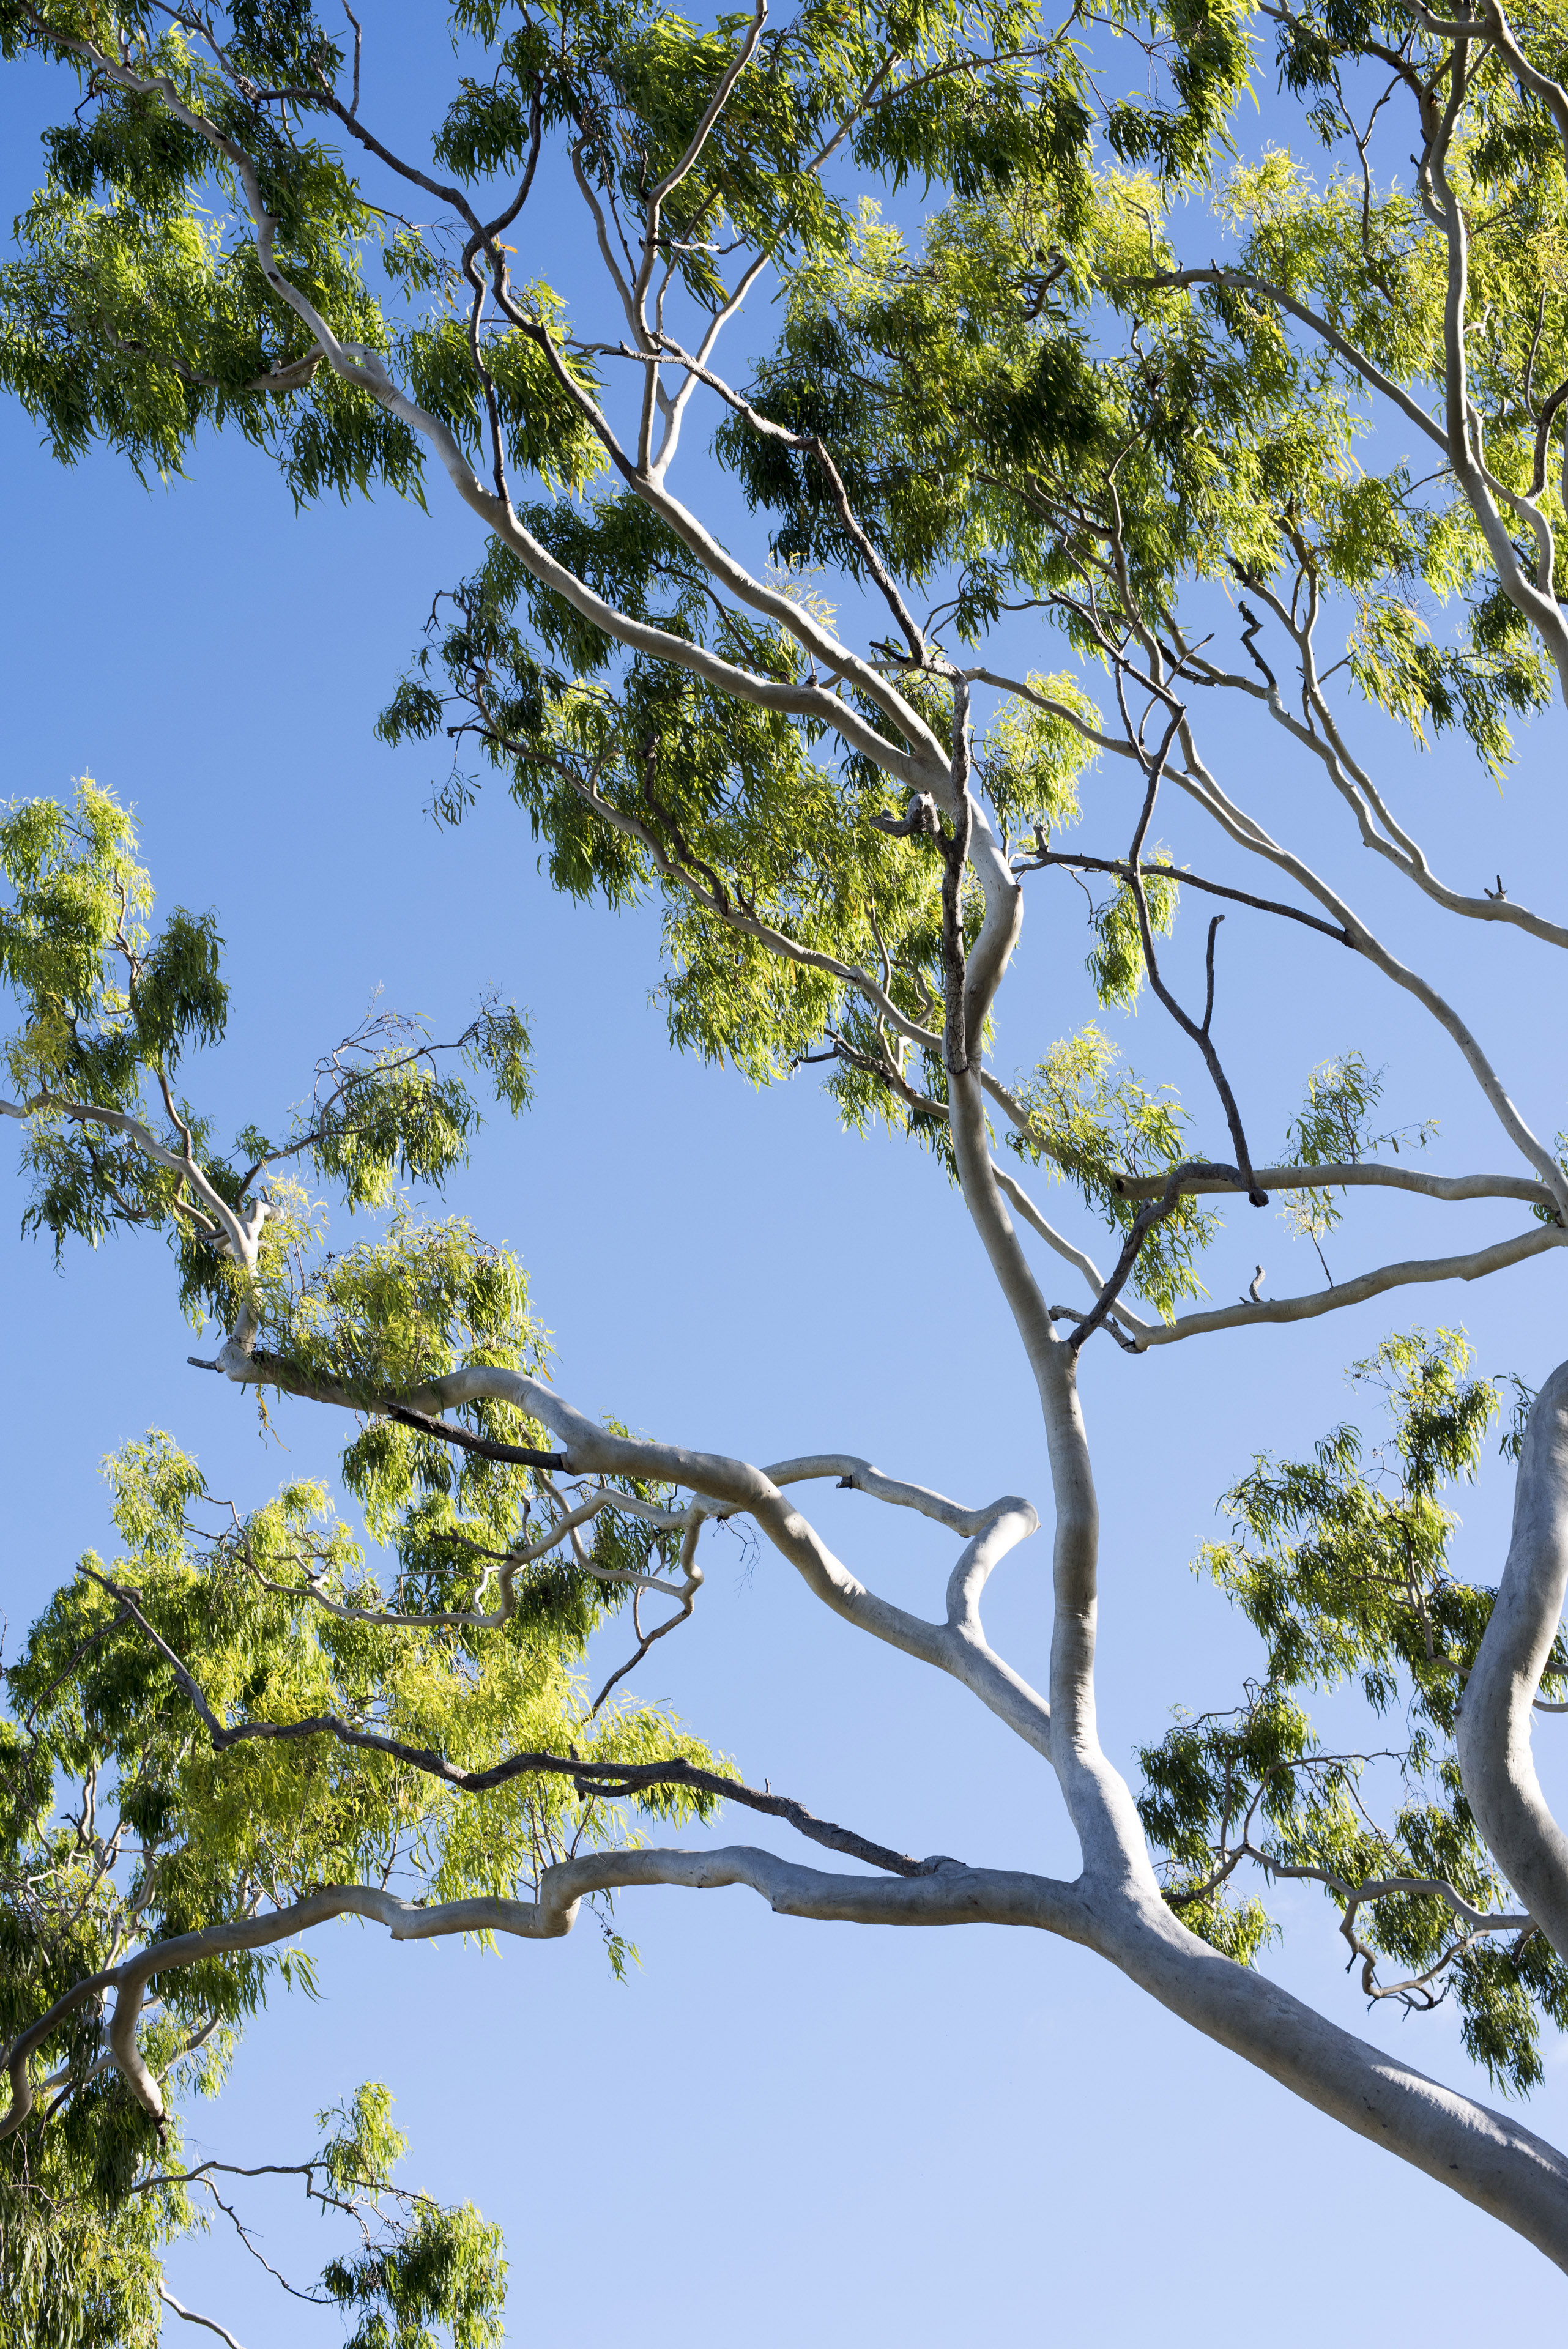 Branches of a tree with fresh green spring or summer leaves against a blue sky viewed from below on a sunny day